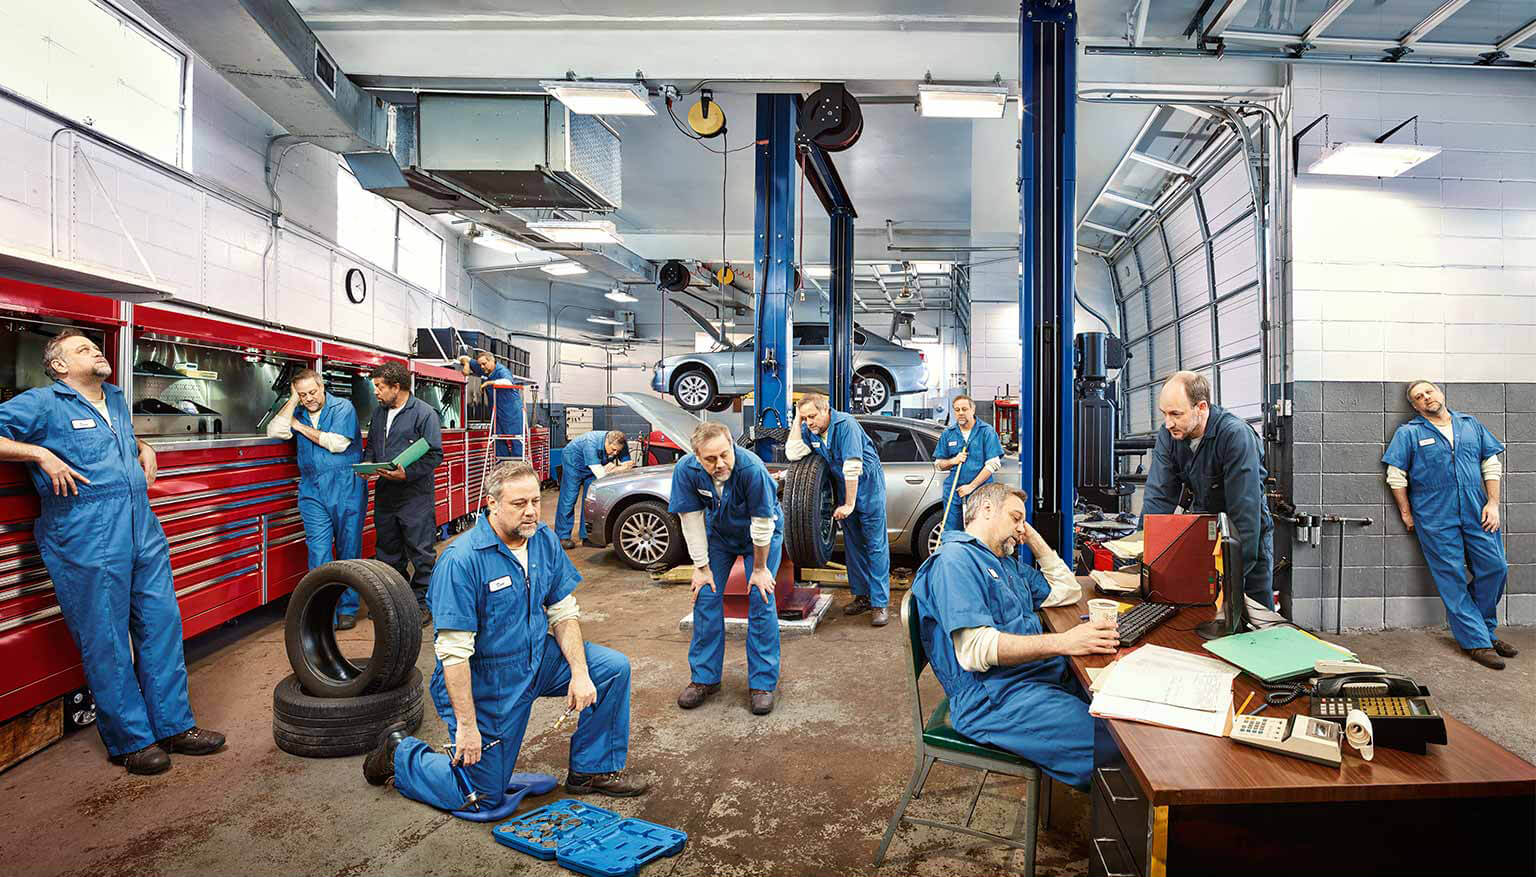 Exhausted mechanic with adult NTM pictured throughout the day at the garage